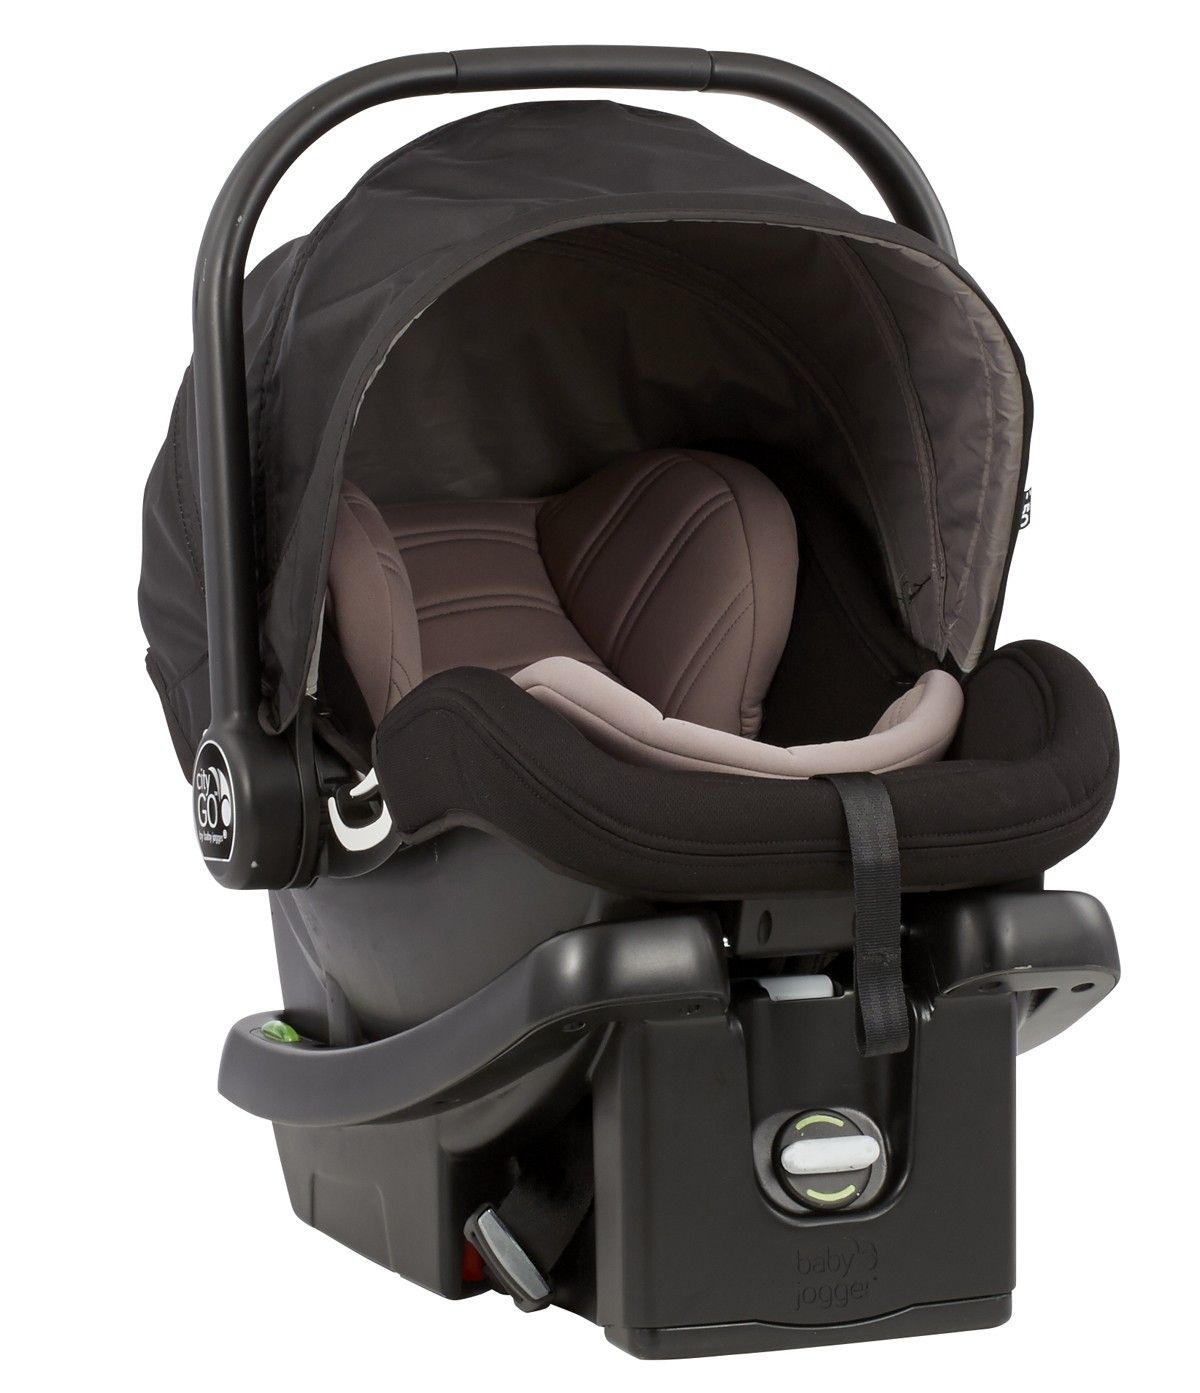 The Baby Jogger City Go Infant Car Seat Provides Same Safety Security And Comfort That Made Joggers Strollers Famous